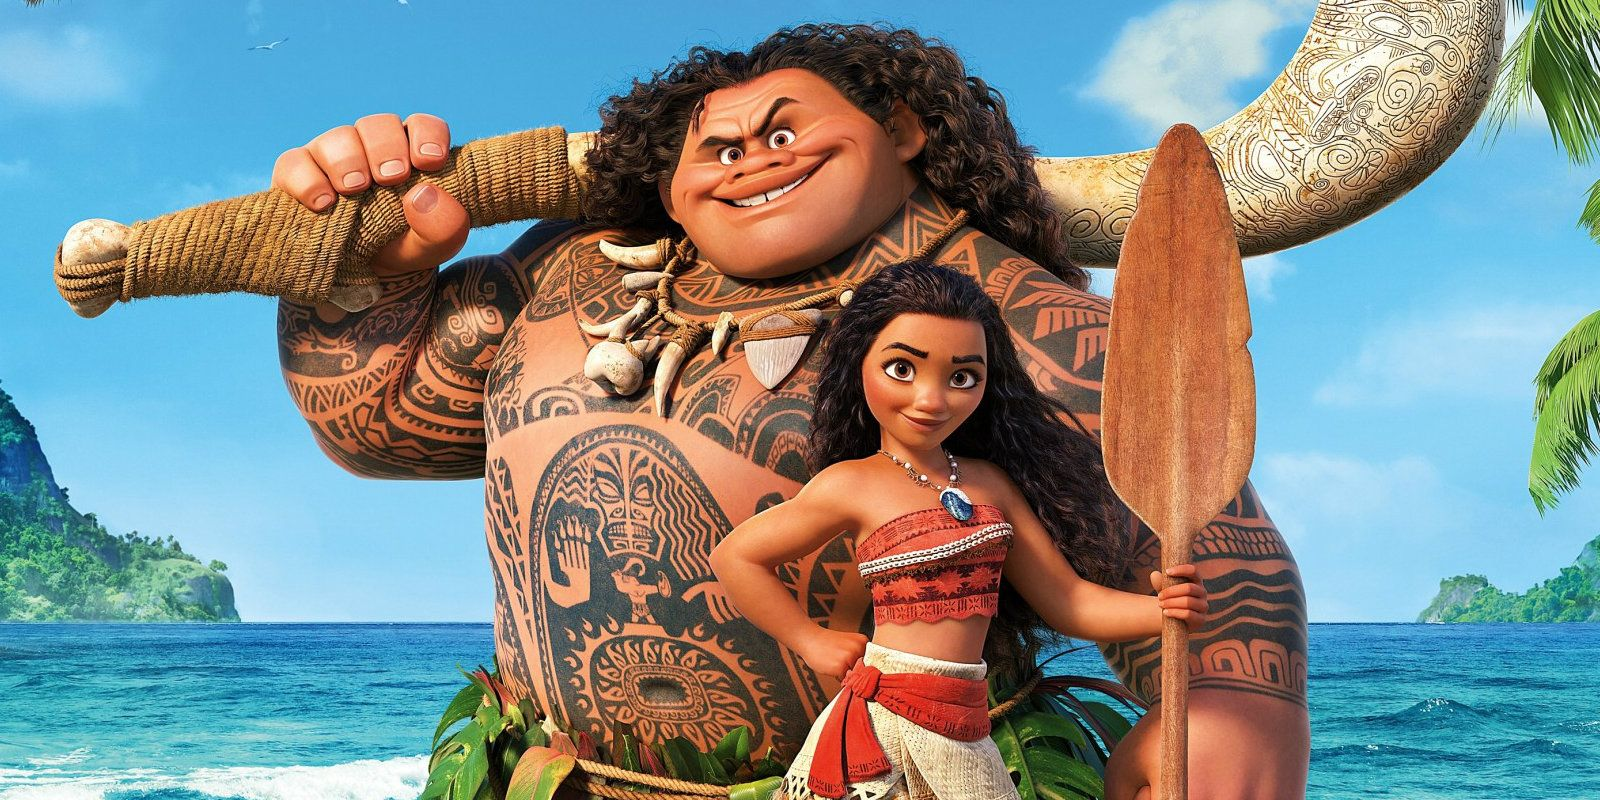 moana [updated torrent link] movie free download - download moana